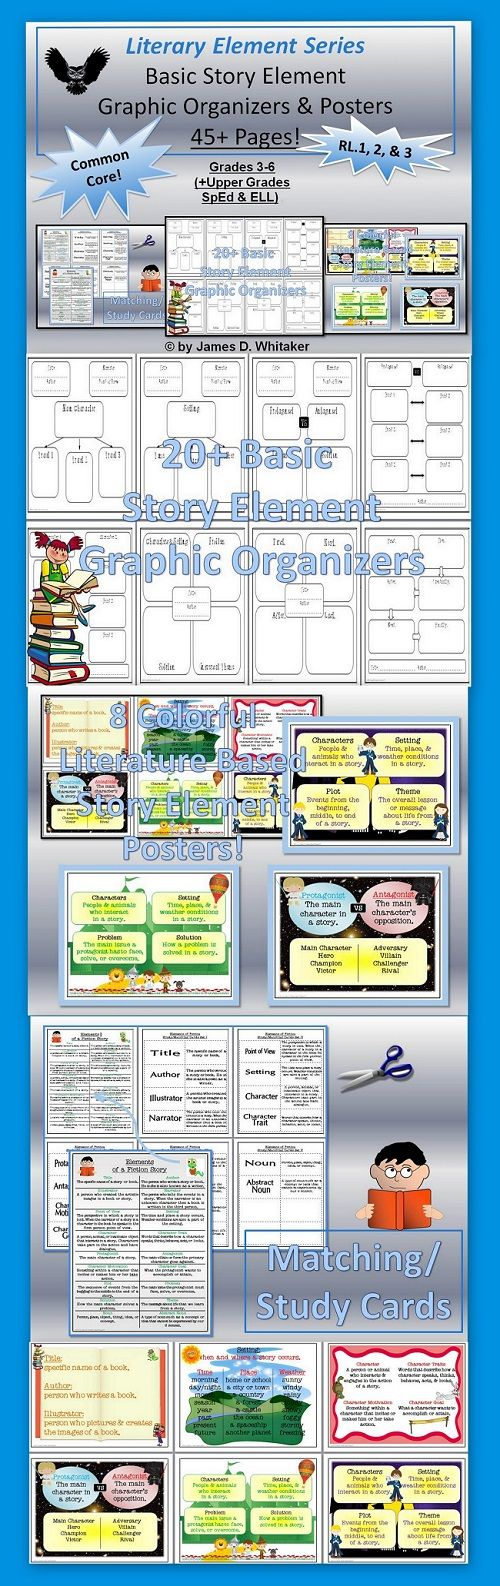 Basic Story Element Graphic Organizers & Posters for Grades 3-6 -- 45+ Pages of Common Core Rigor!